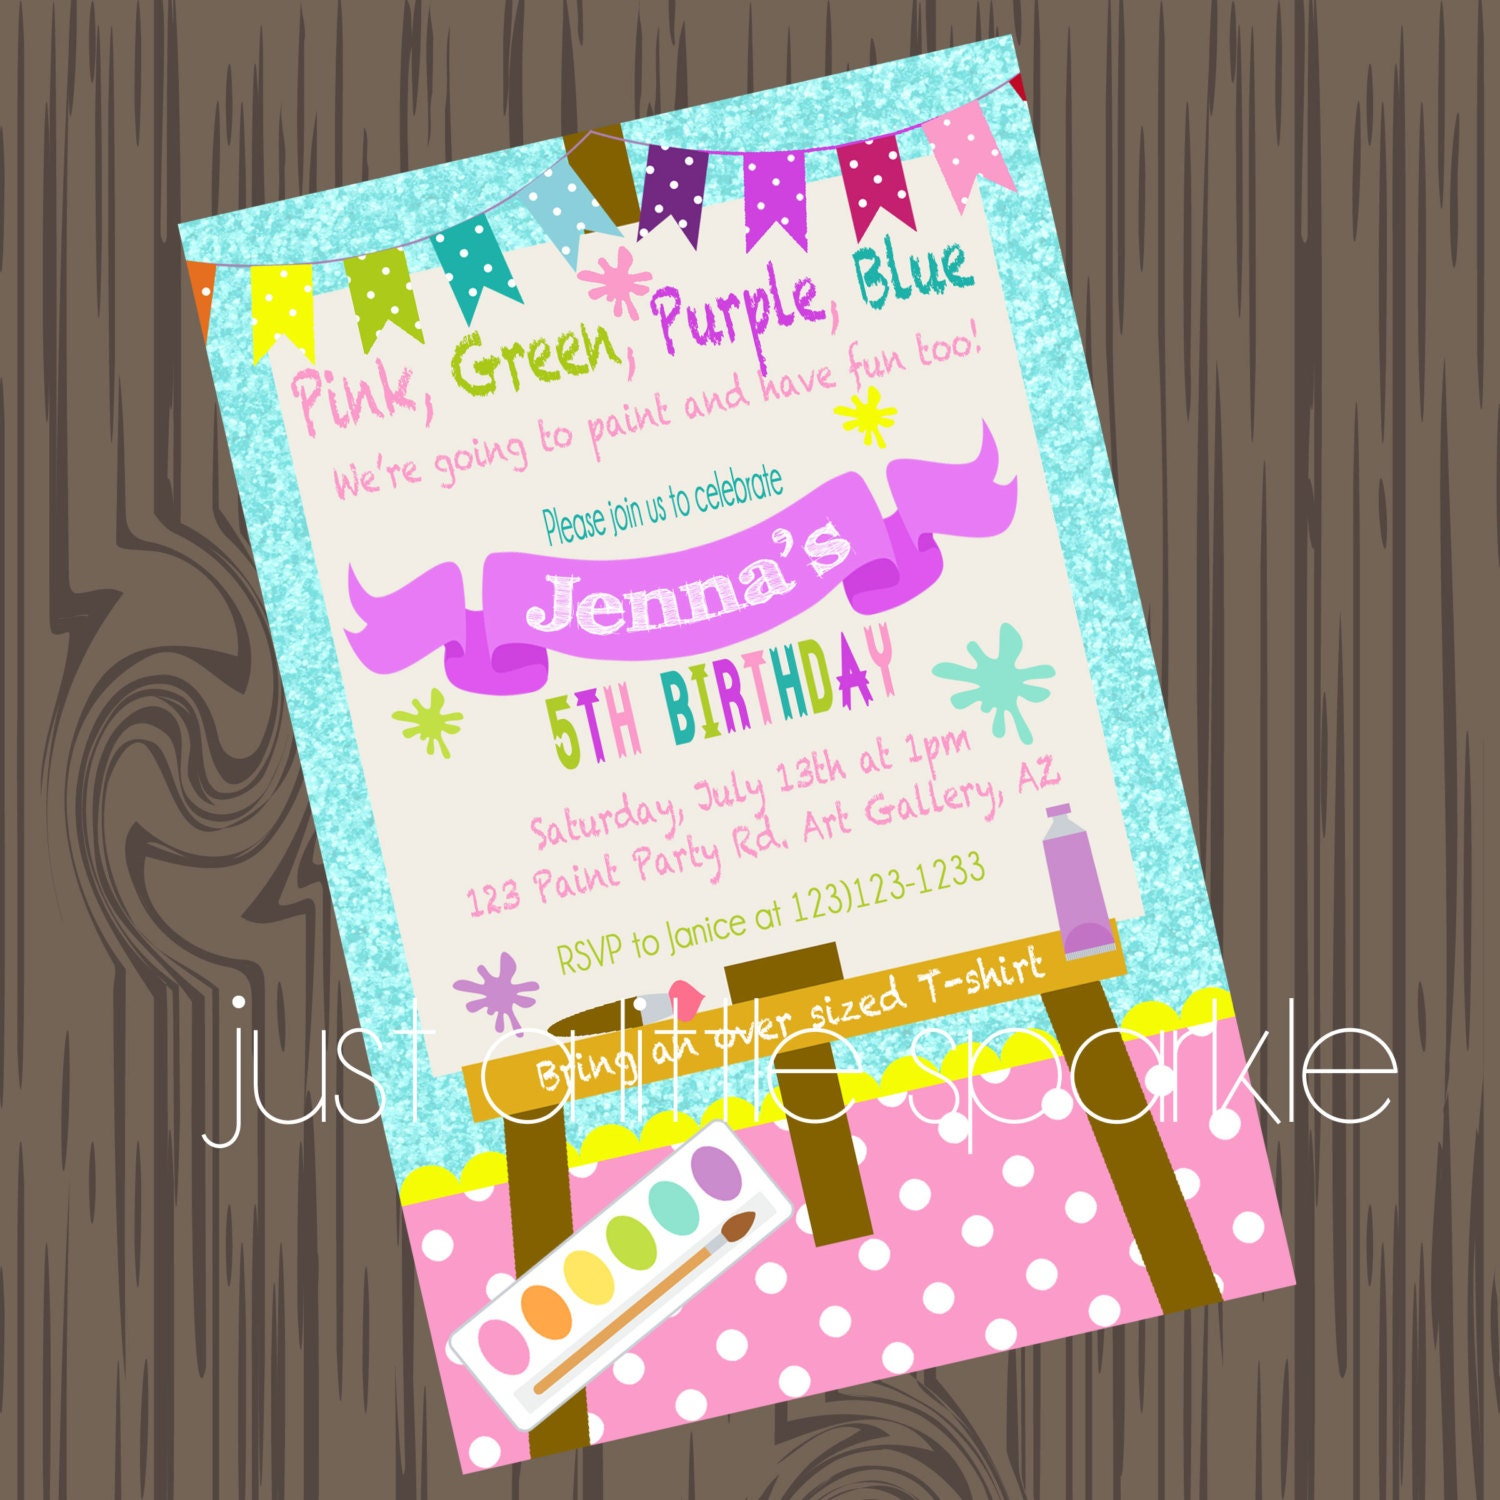 Paint Party Invitation Art Supply party invitation Paint – Artist Party Invitations